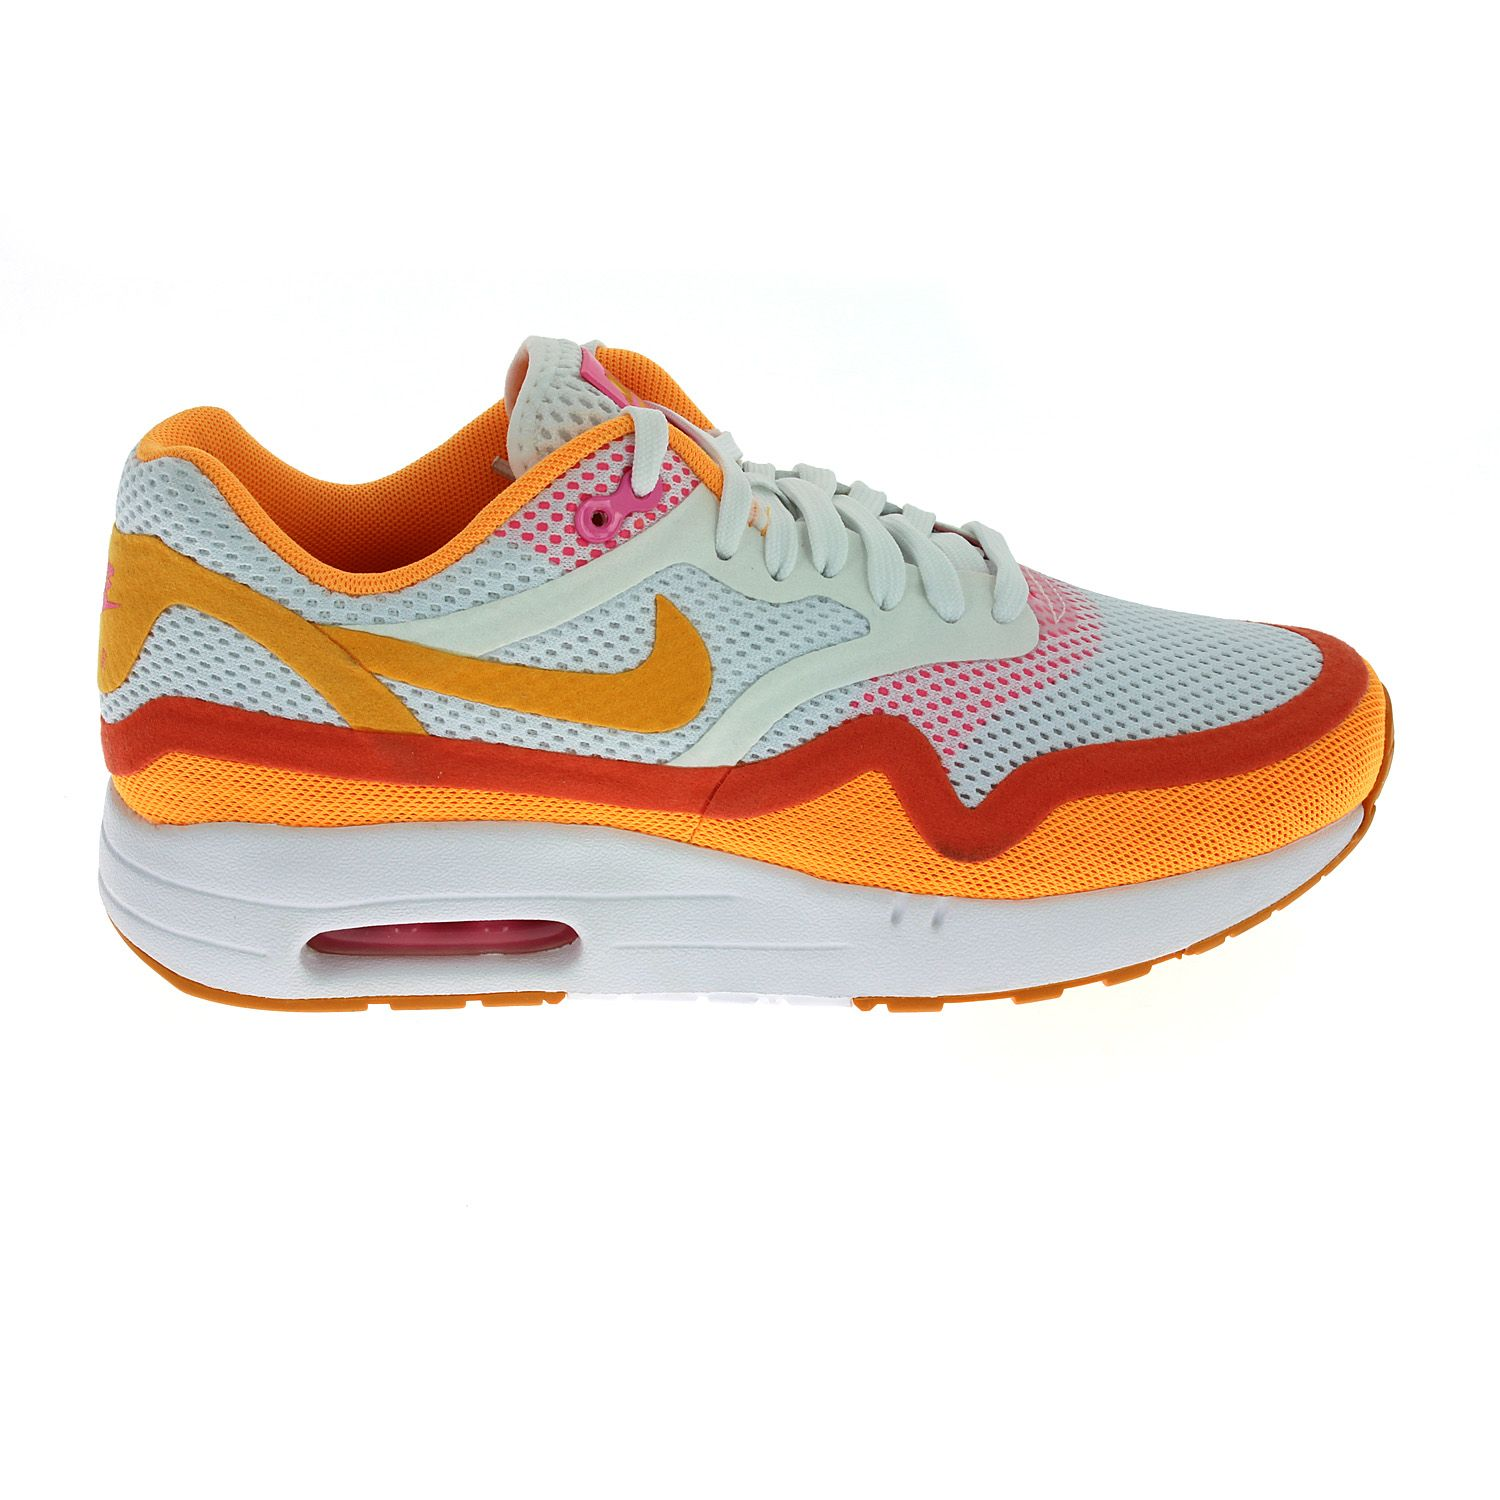 4de3a9bdf5f Nike Air Max 1 Breathe W ( 644443-101 ) Nike Γυναίκα > Παπούτσια > Trainers